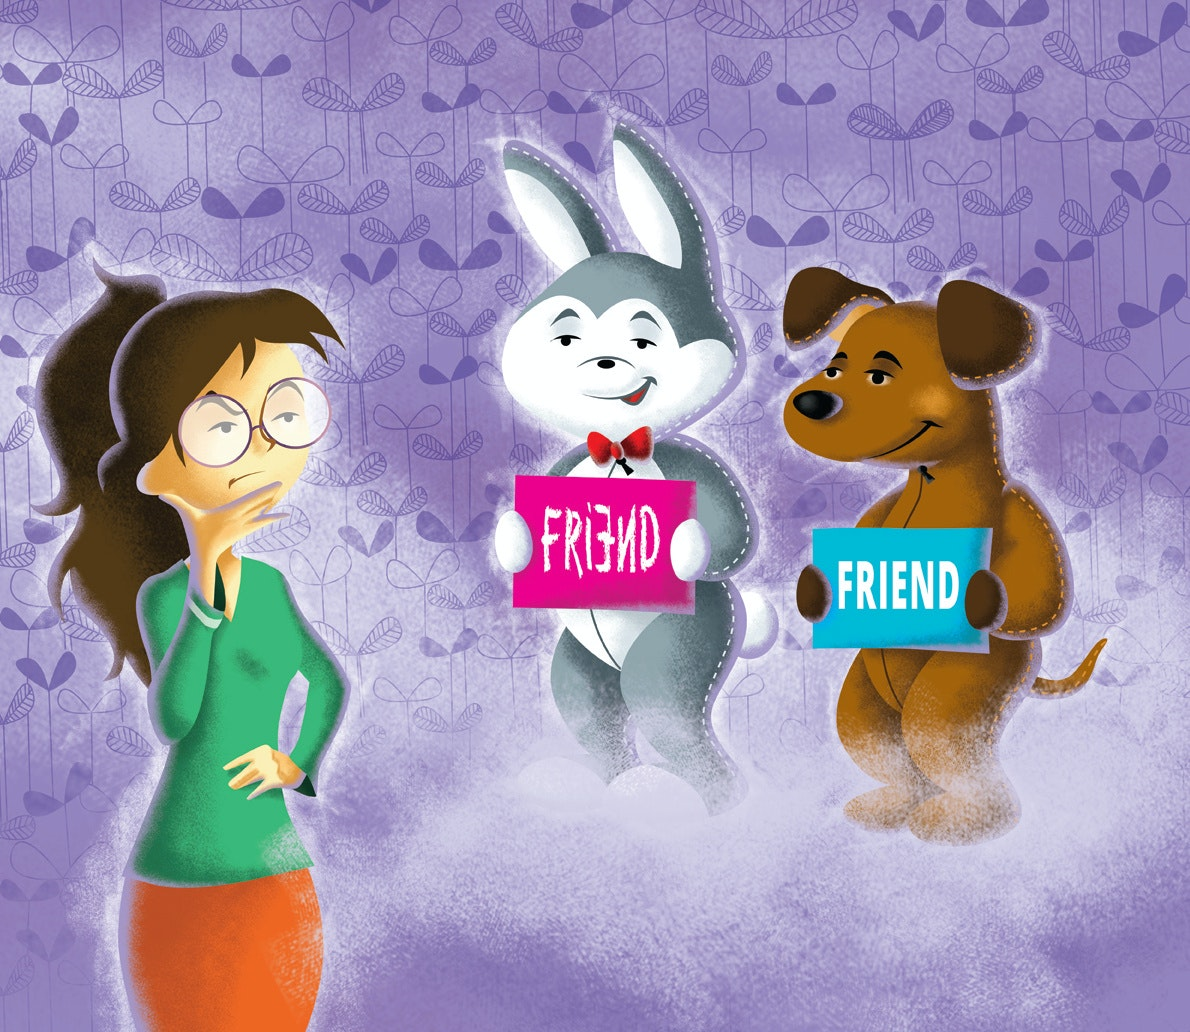 Illustration of friends for a social net website by WolfBell.